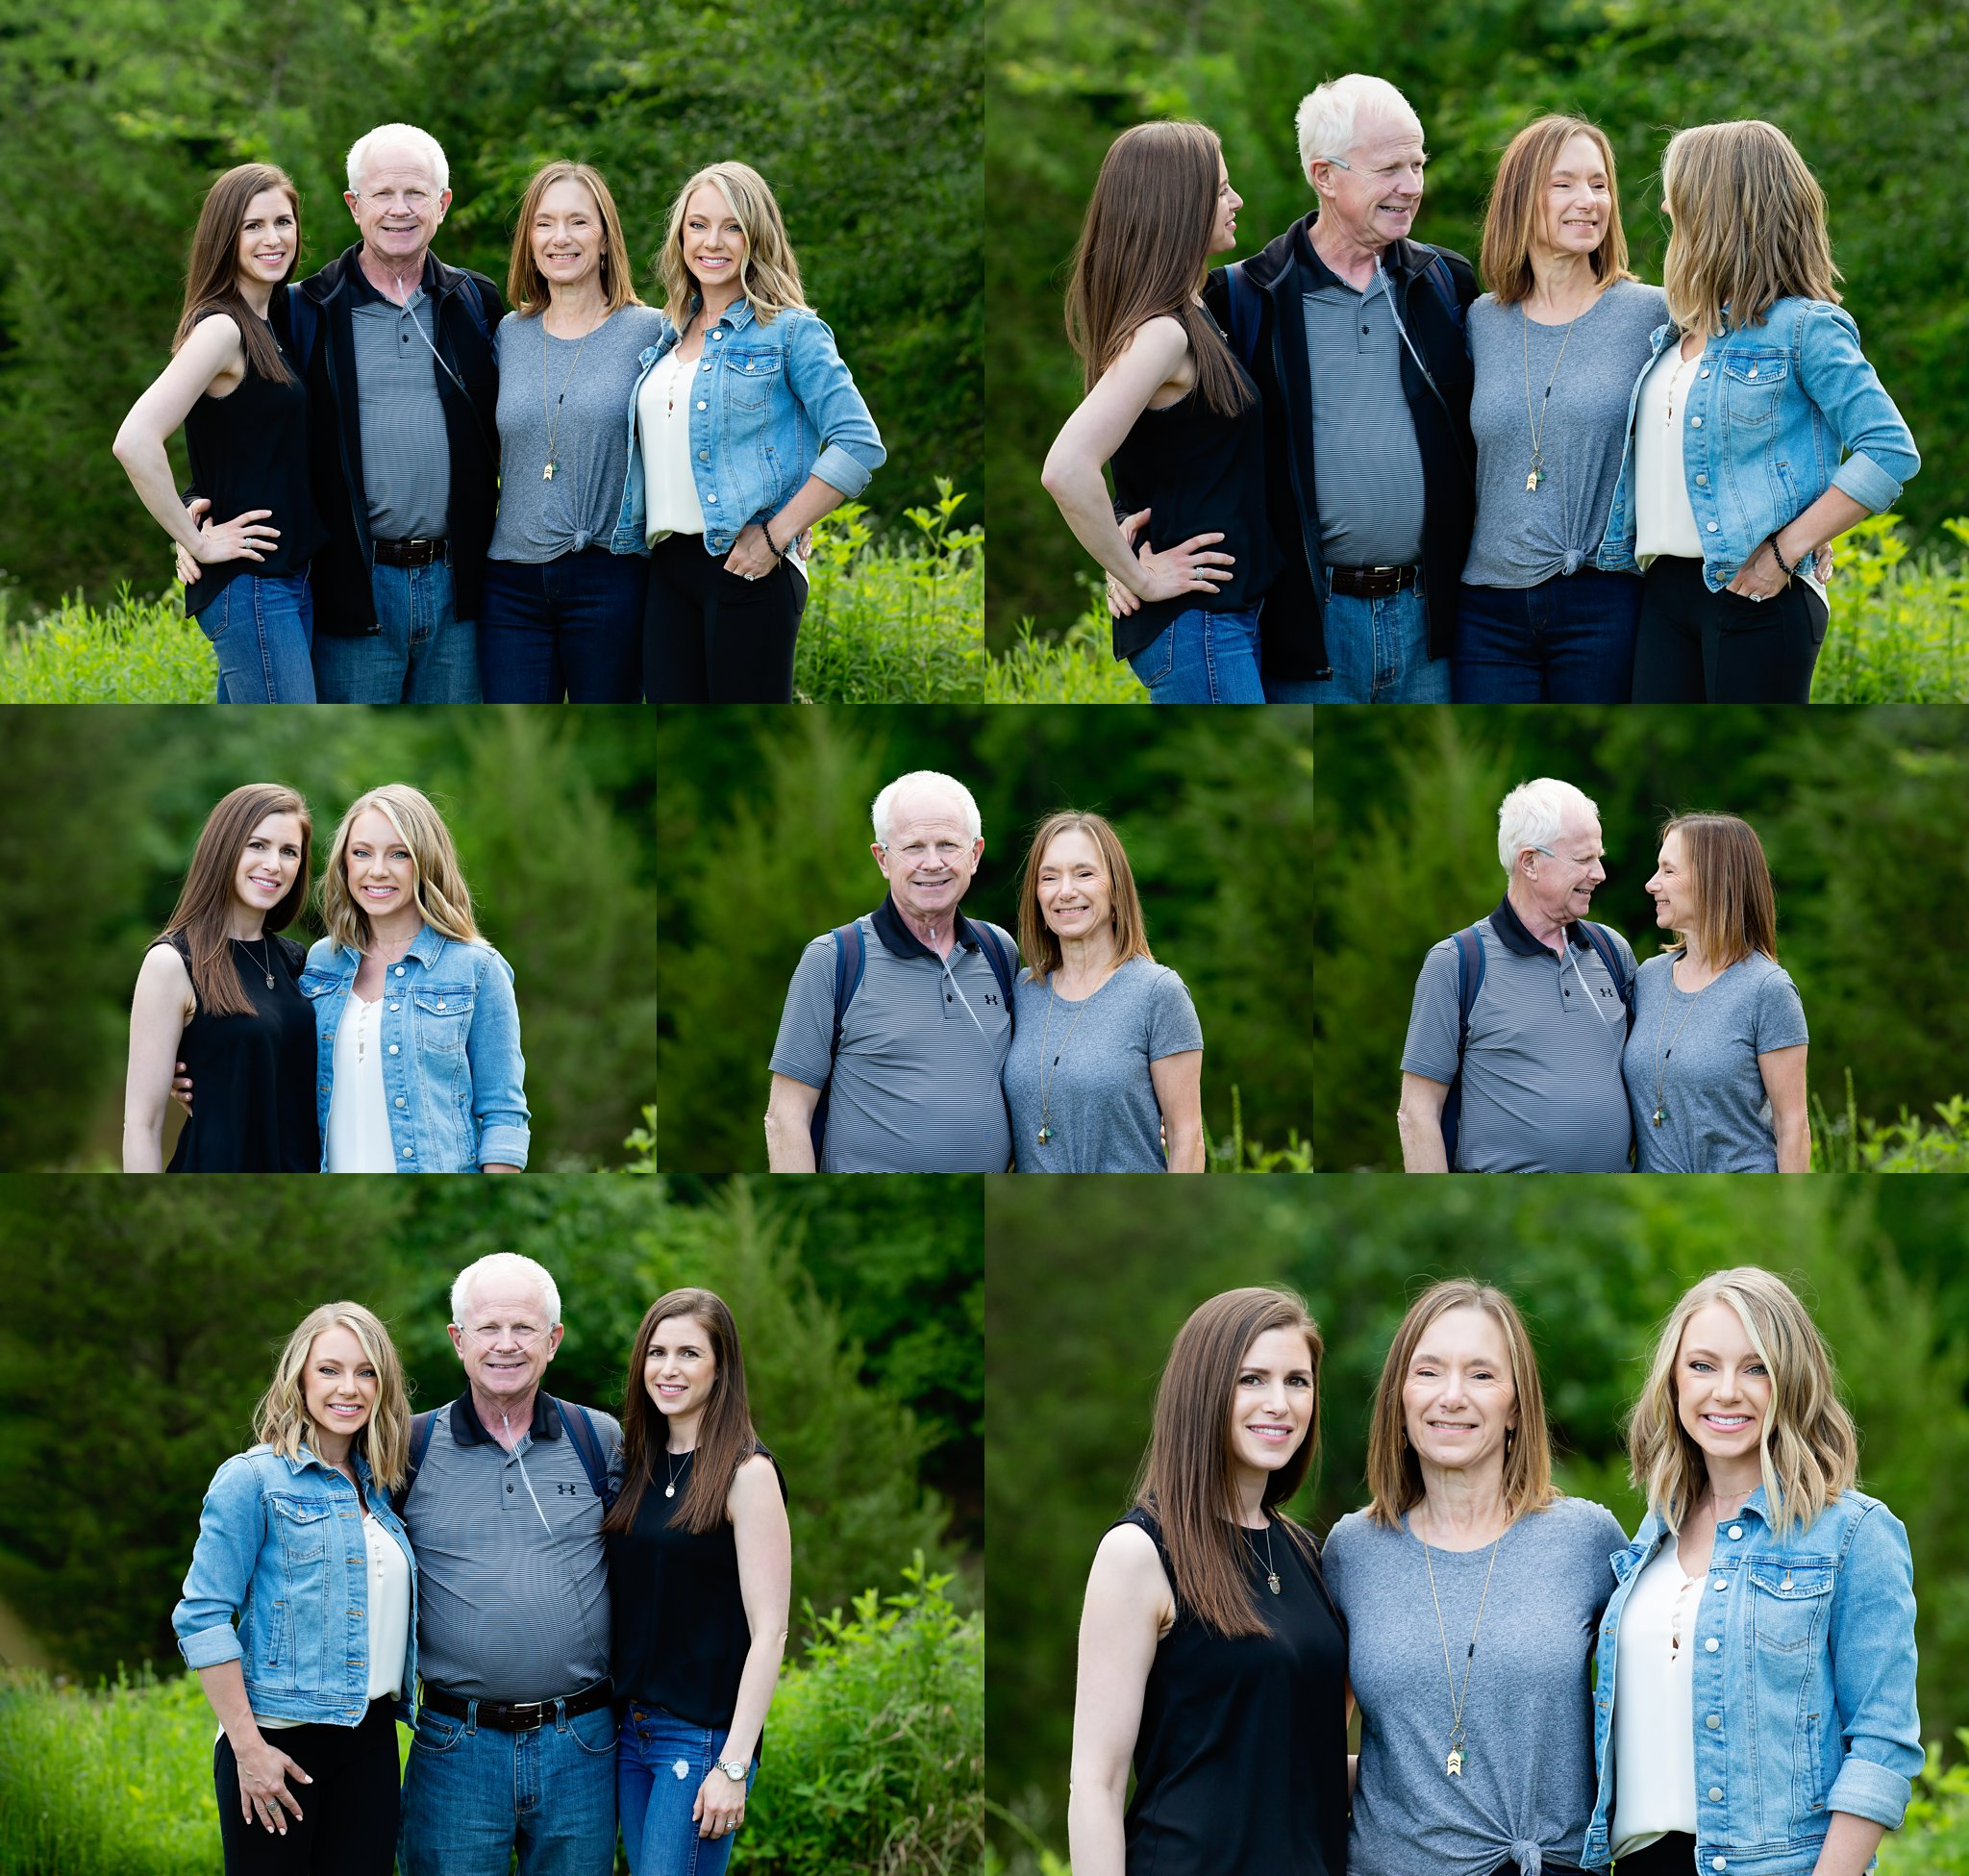 Wake_Forest_Spring_Mini_Session_Family_Photography.jpg